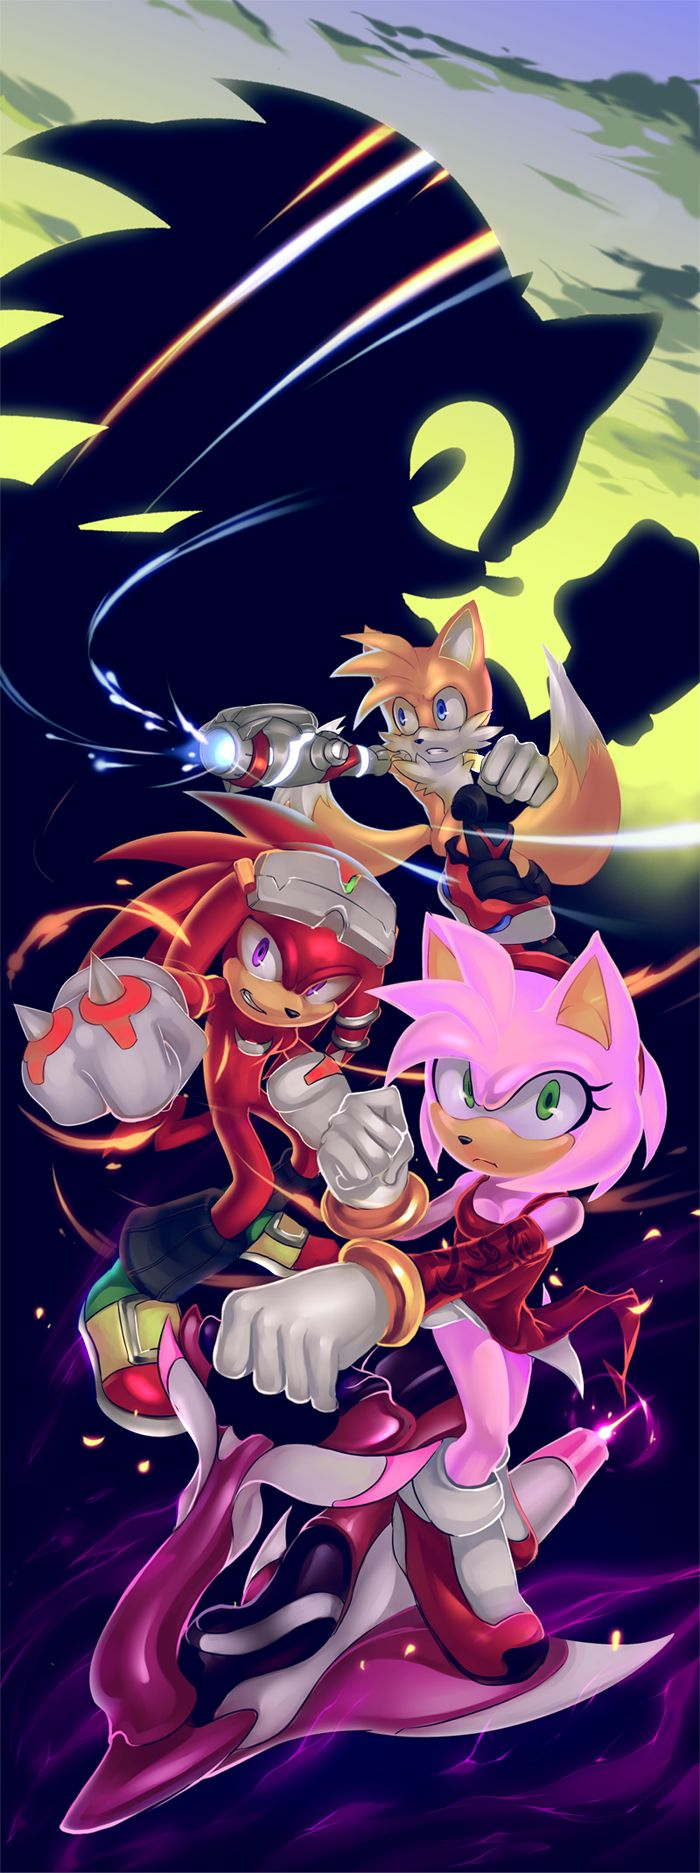 RMR - amy, knuckles and tails by cat-meff.deviantart.com on @deviantART